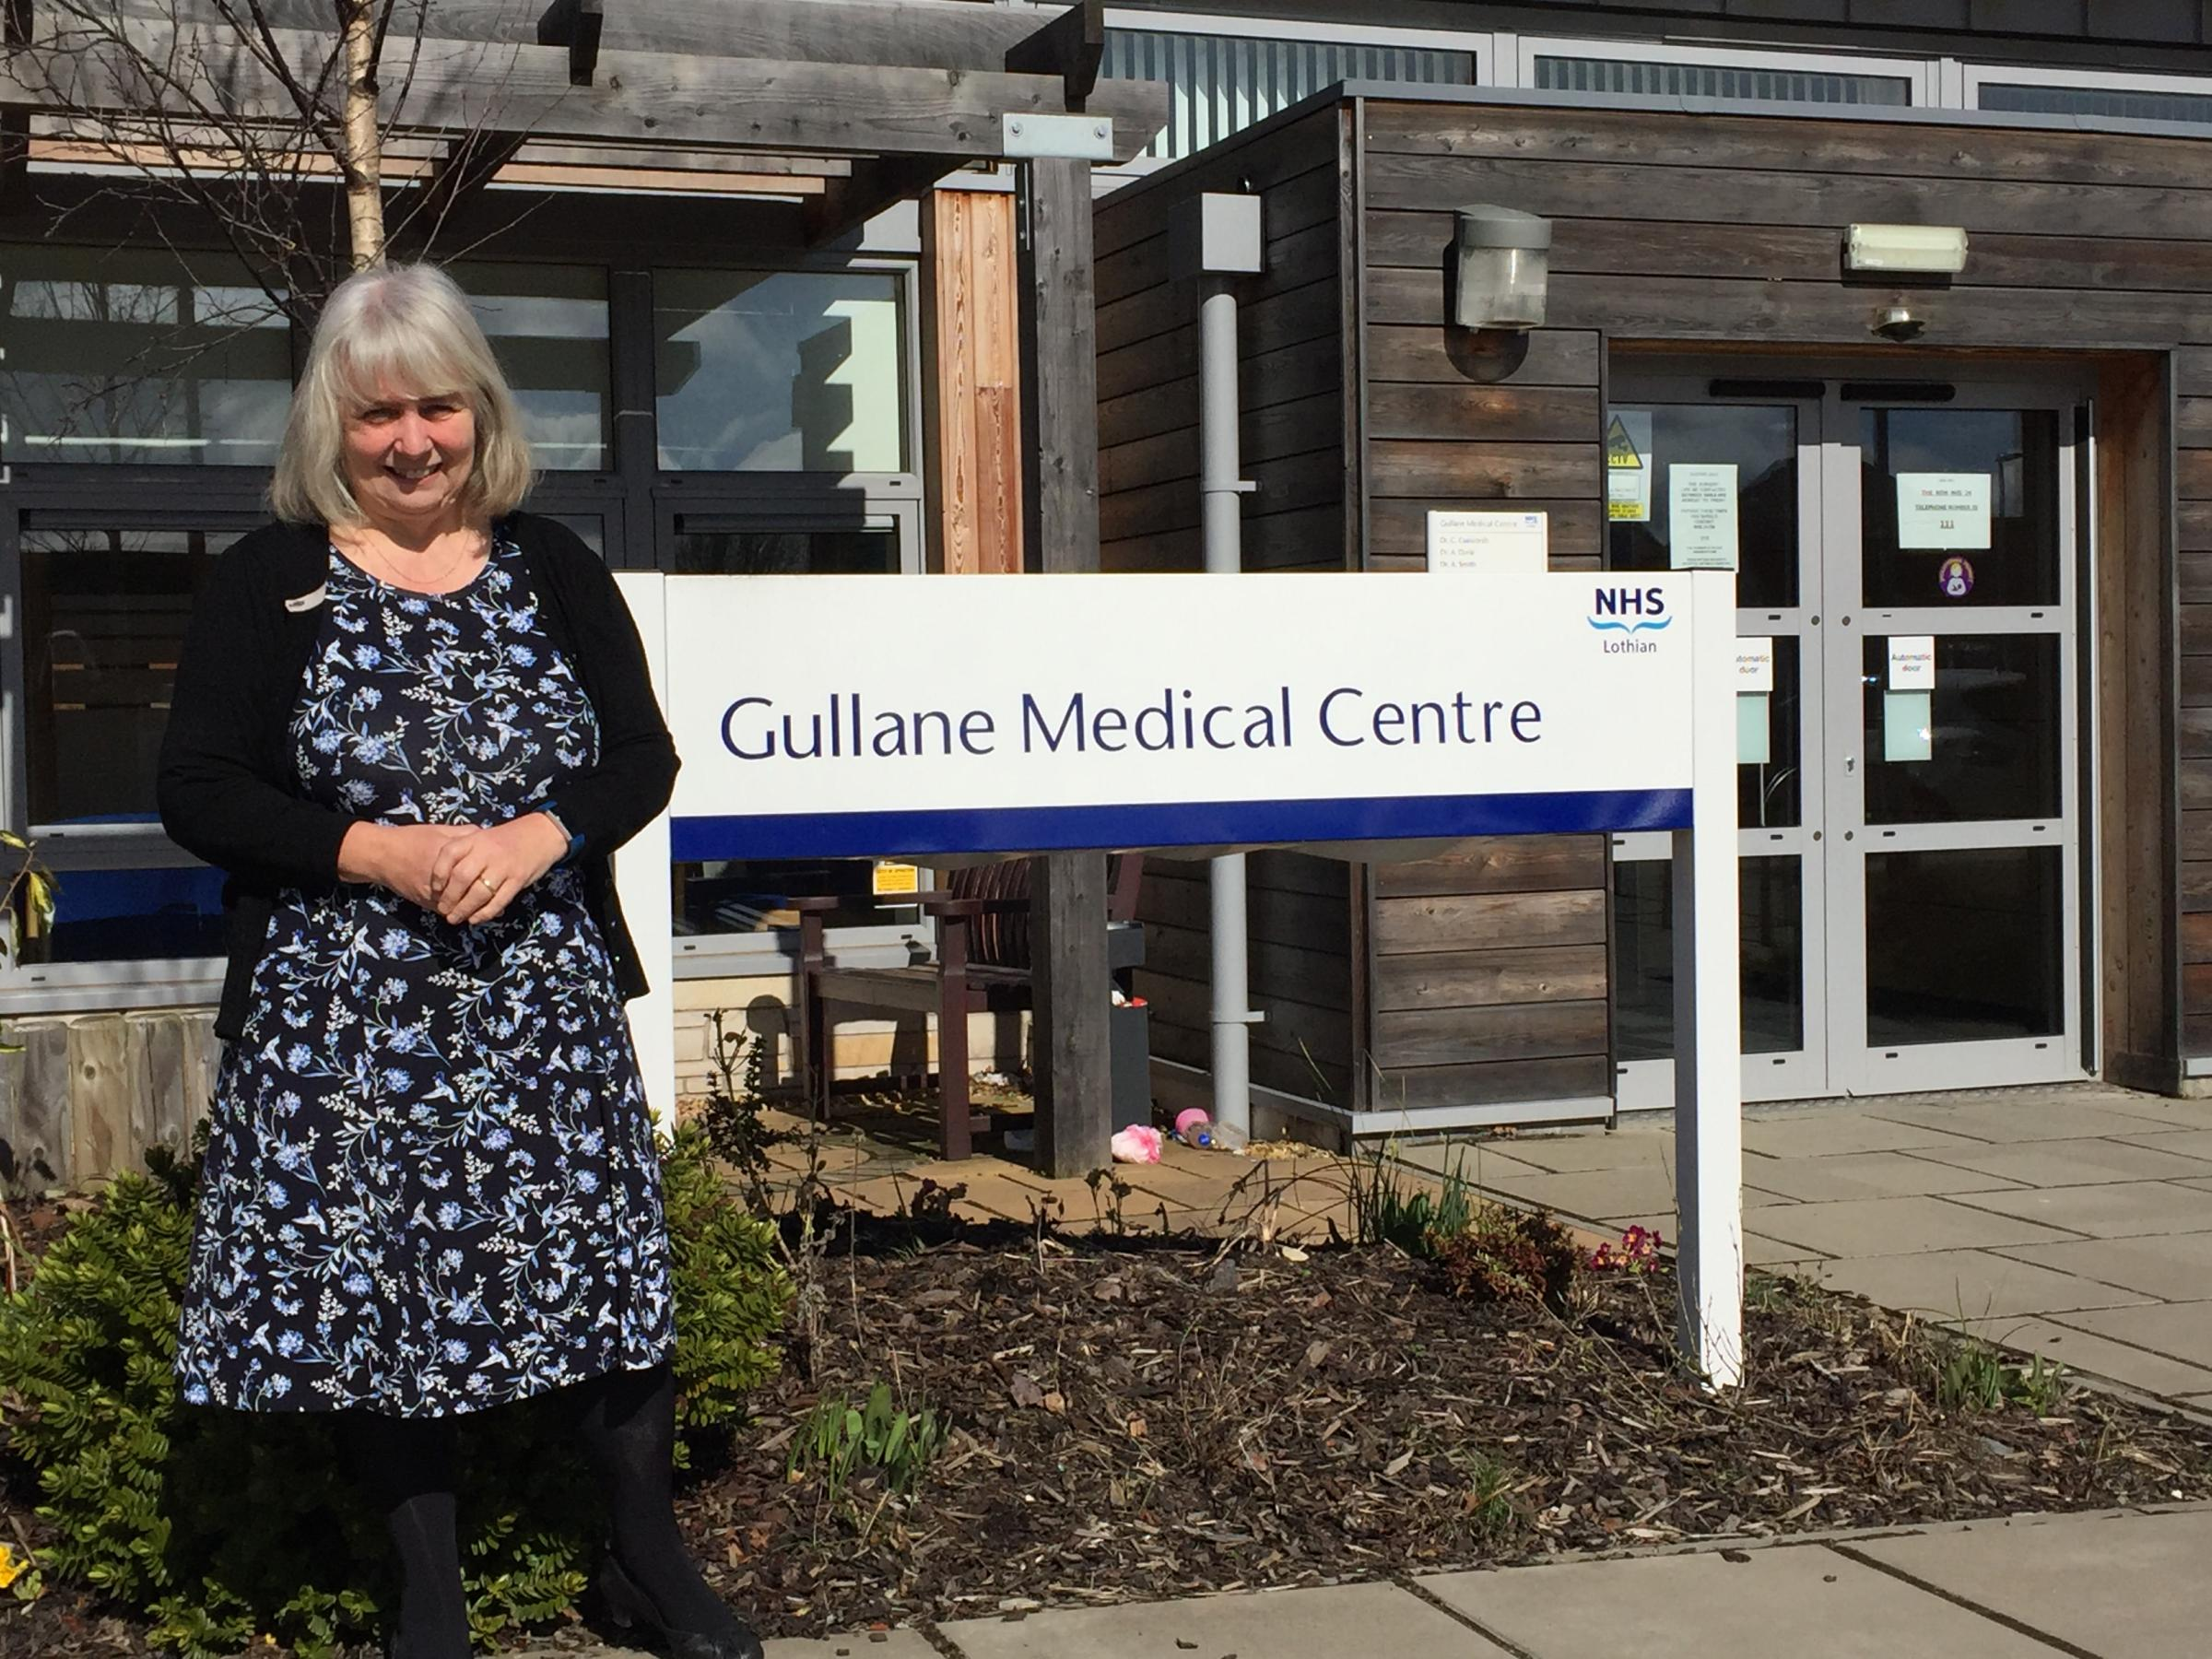 Dr Durie is getting ready to leave Gullane Medical Centre